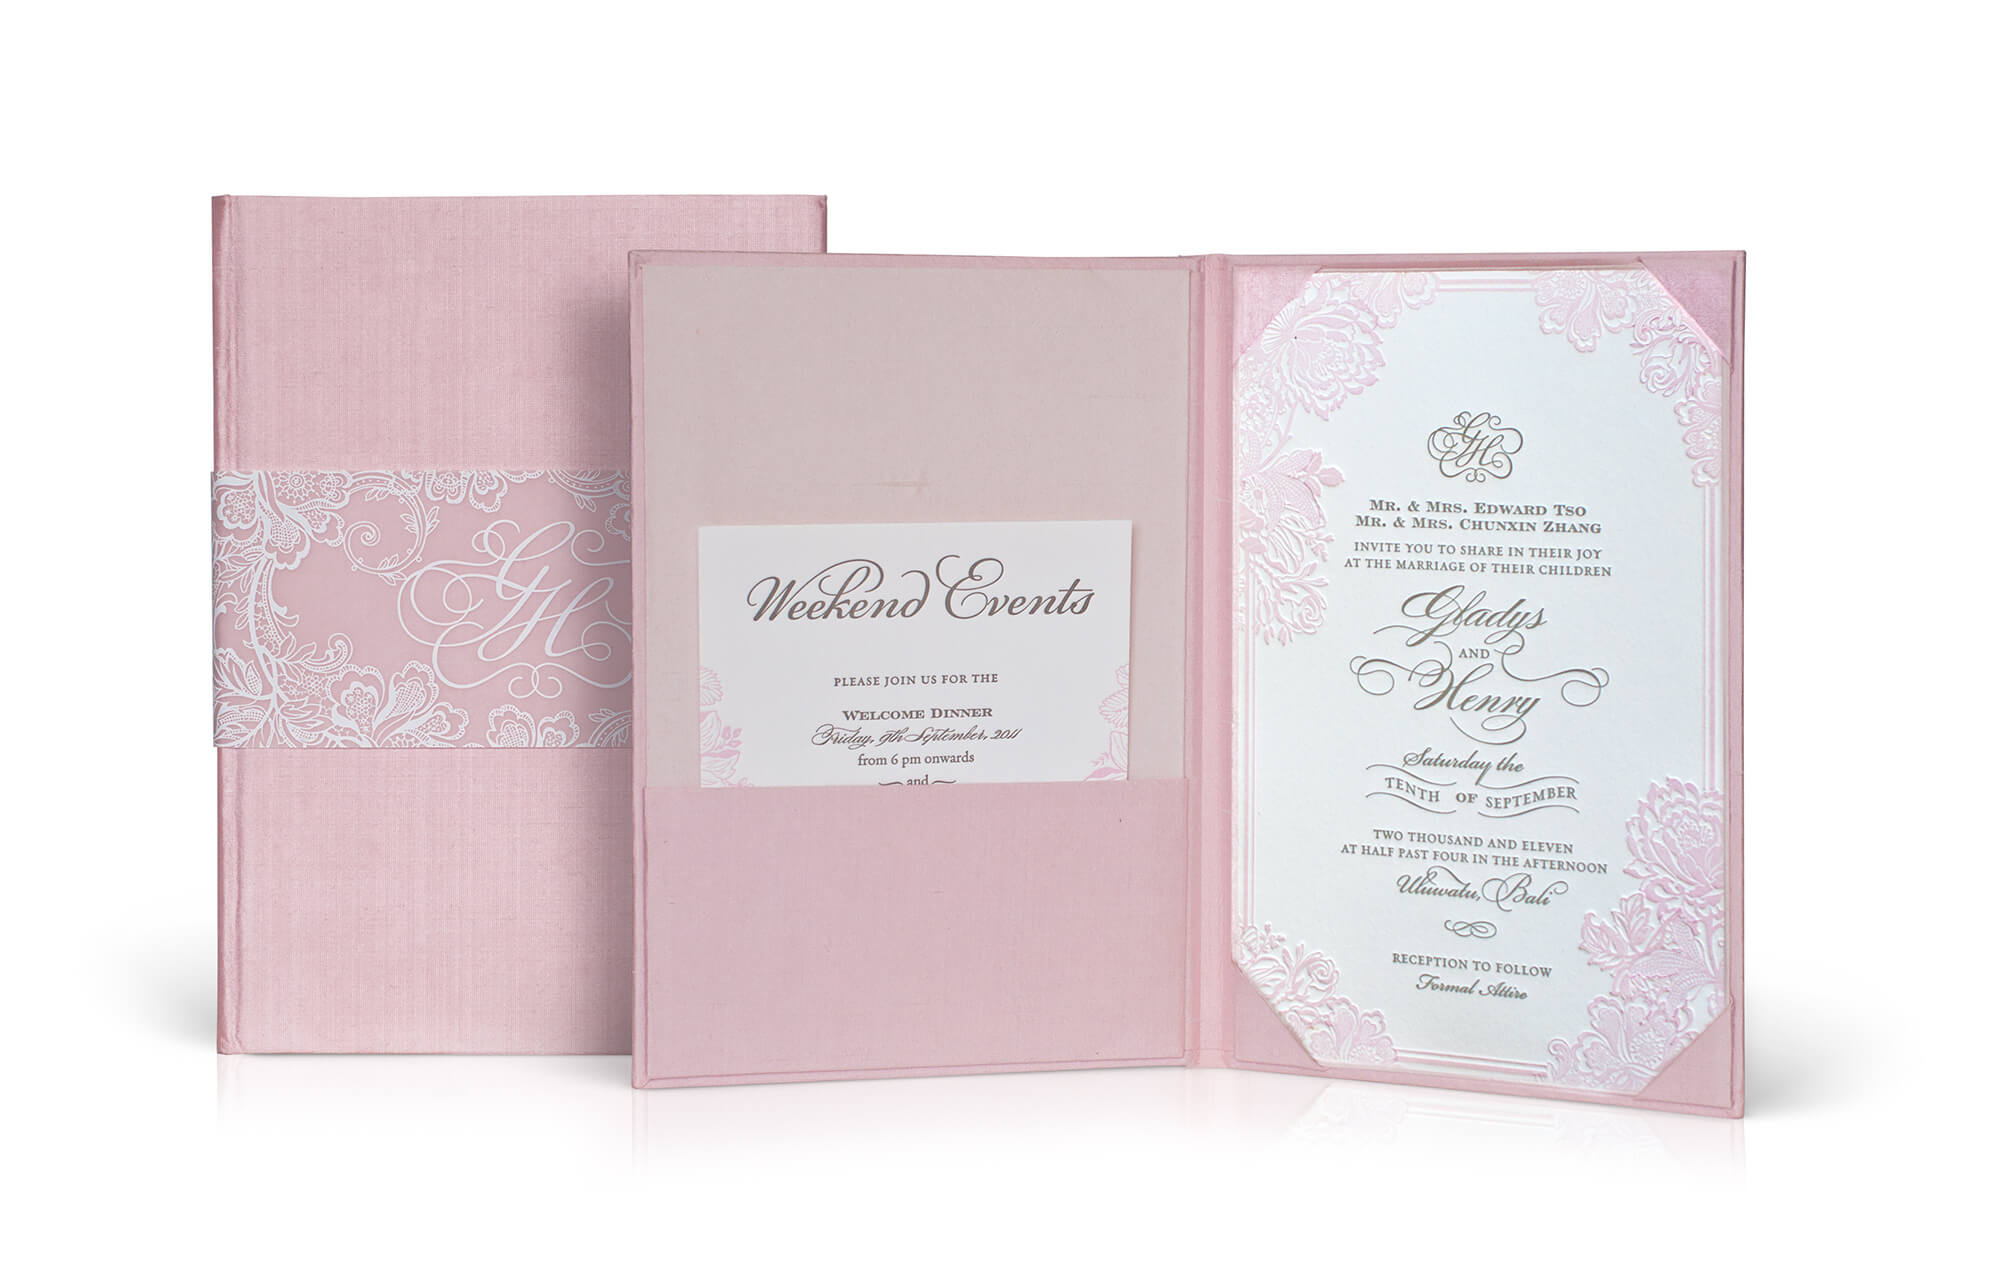 Blush silk folder wedding invitation with letterpress card